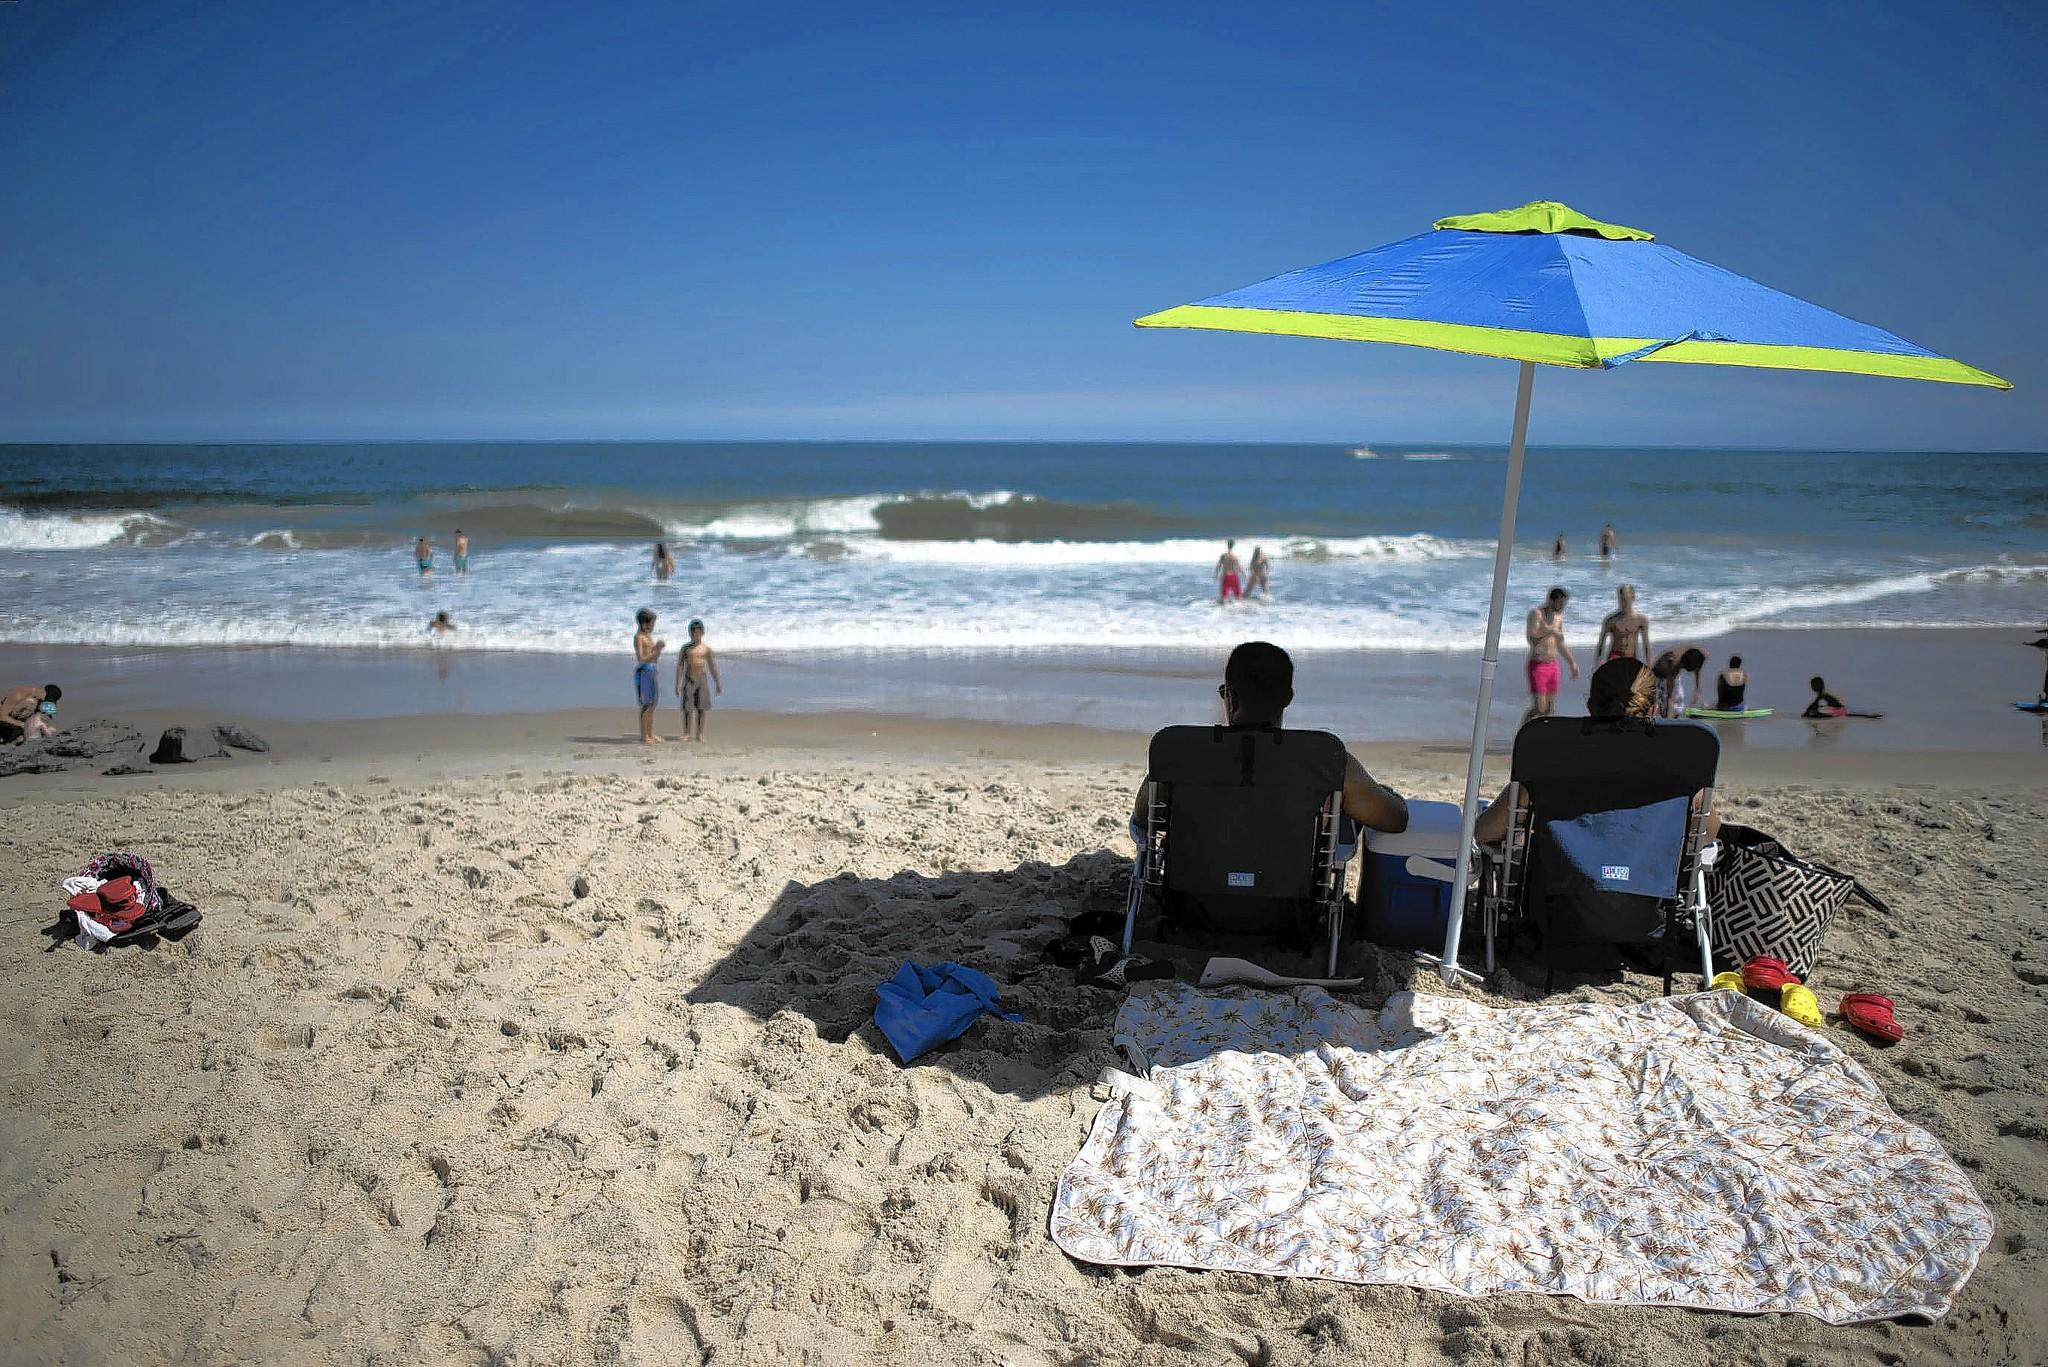 Ocean City beachgoers relaxing on the beach in late August, as the summer season draws to a close.